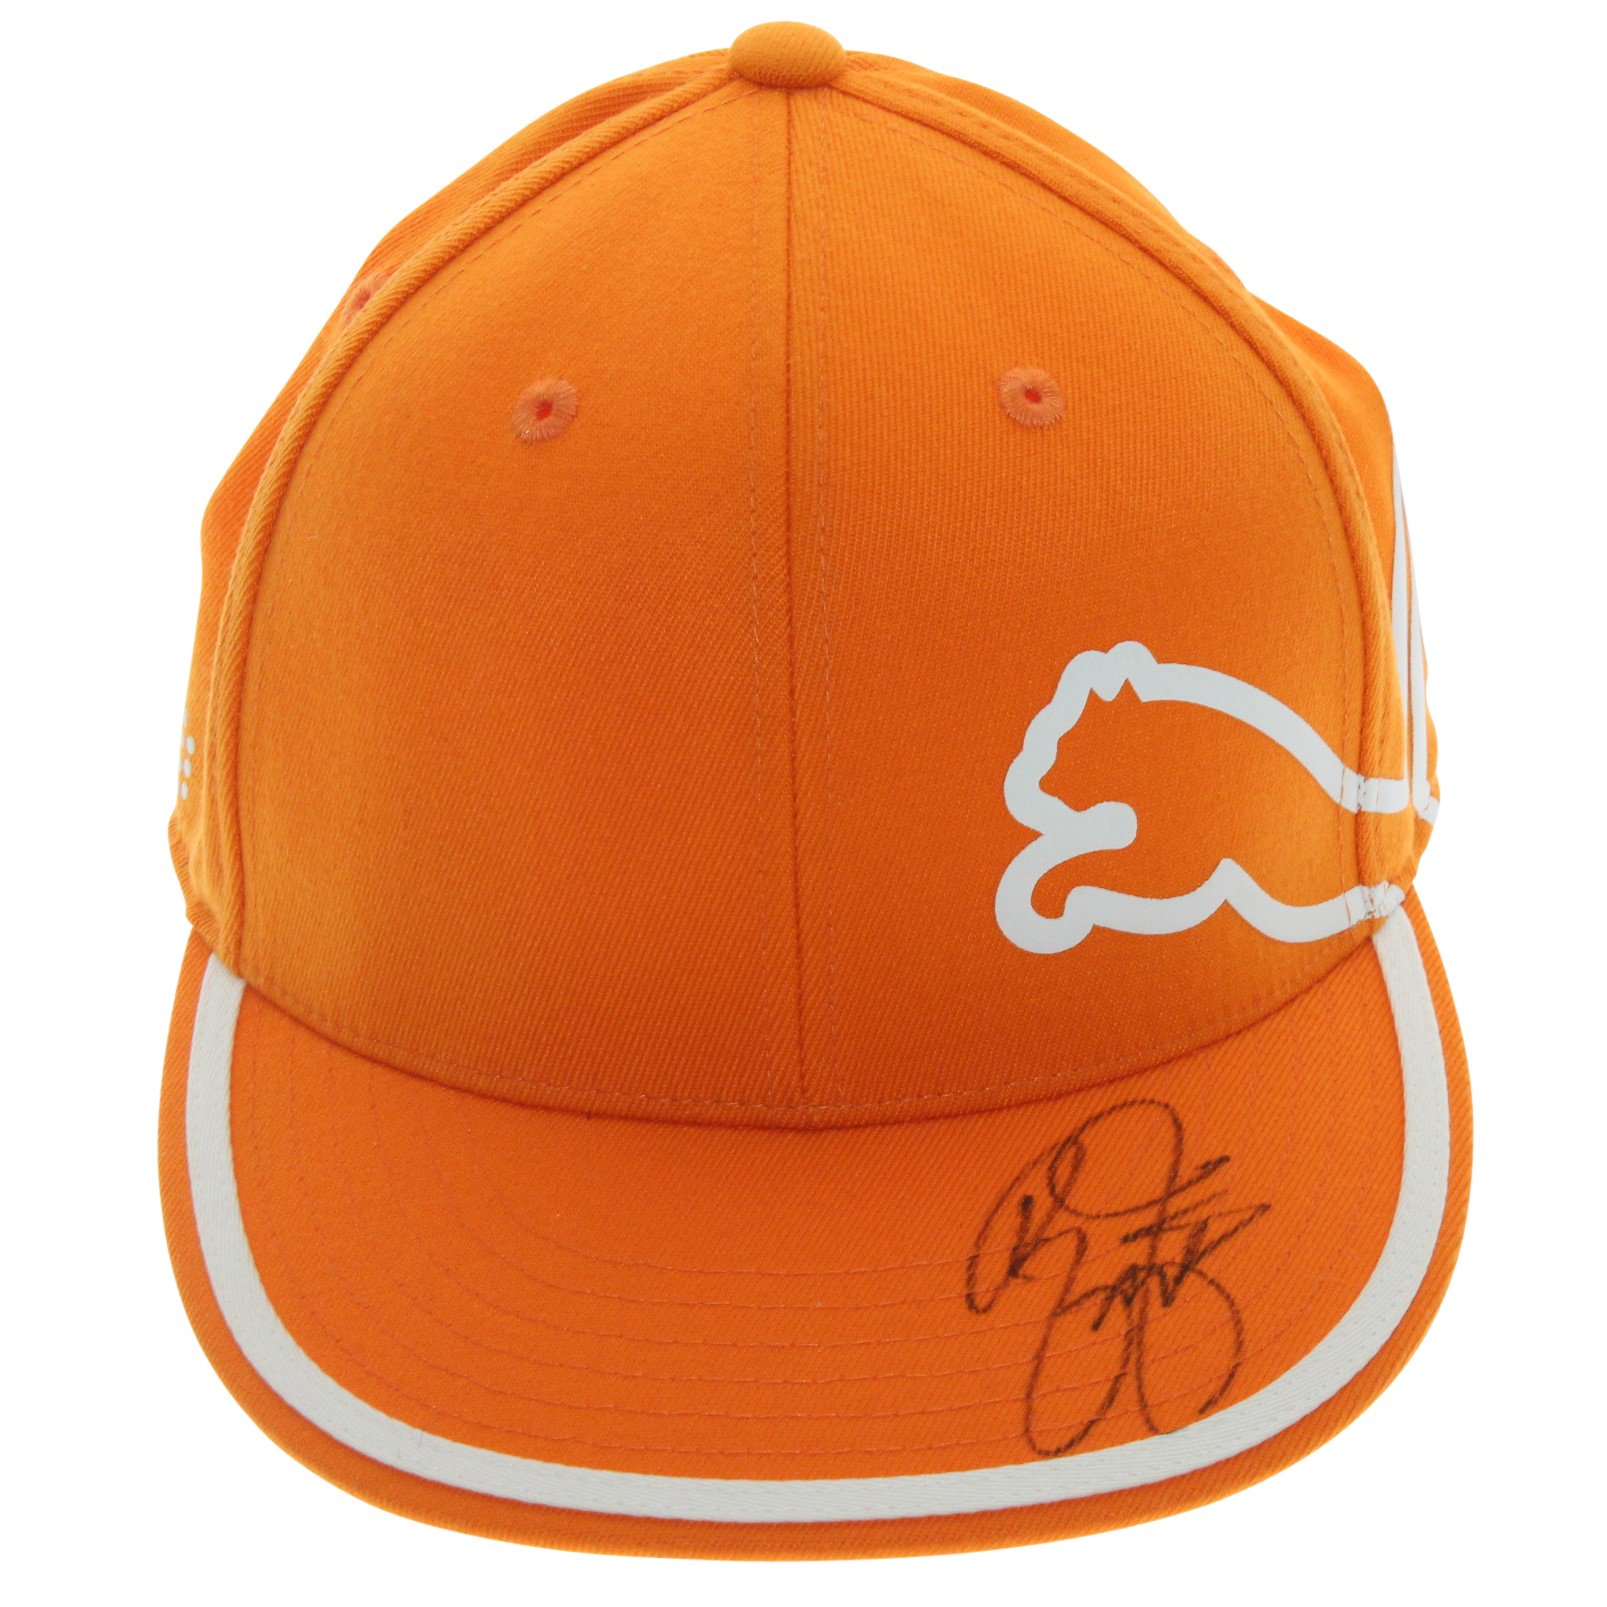 check out 0f1f8 70896 Rickie Fowler Signed Orange with White PUMA Hat JSA  P76639 ...